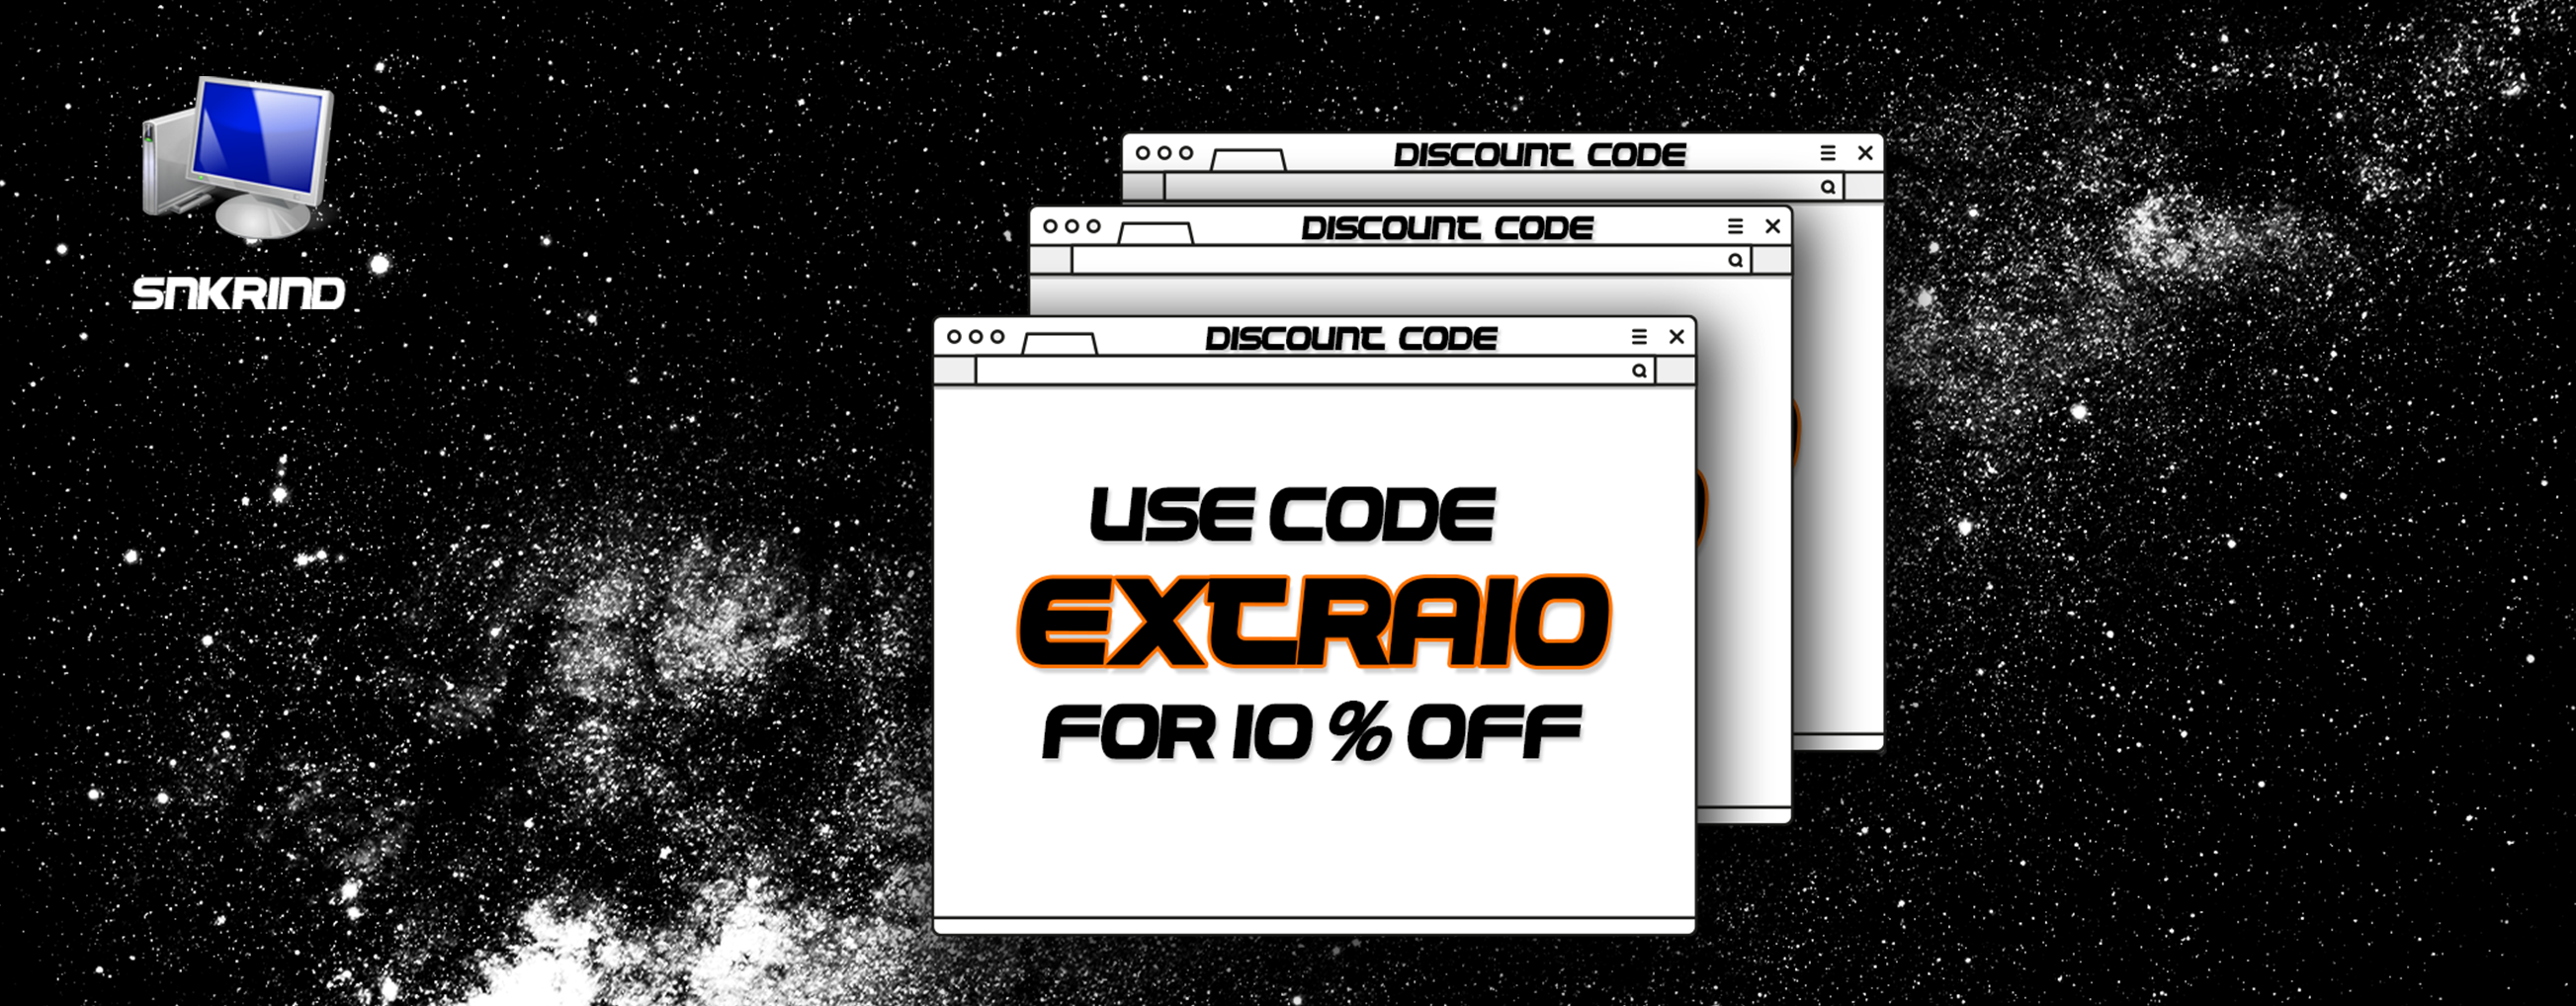 EXTRA10 FOR 10% OFF